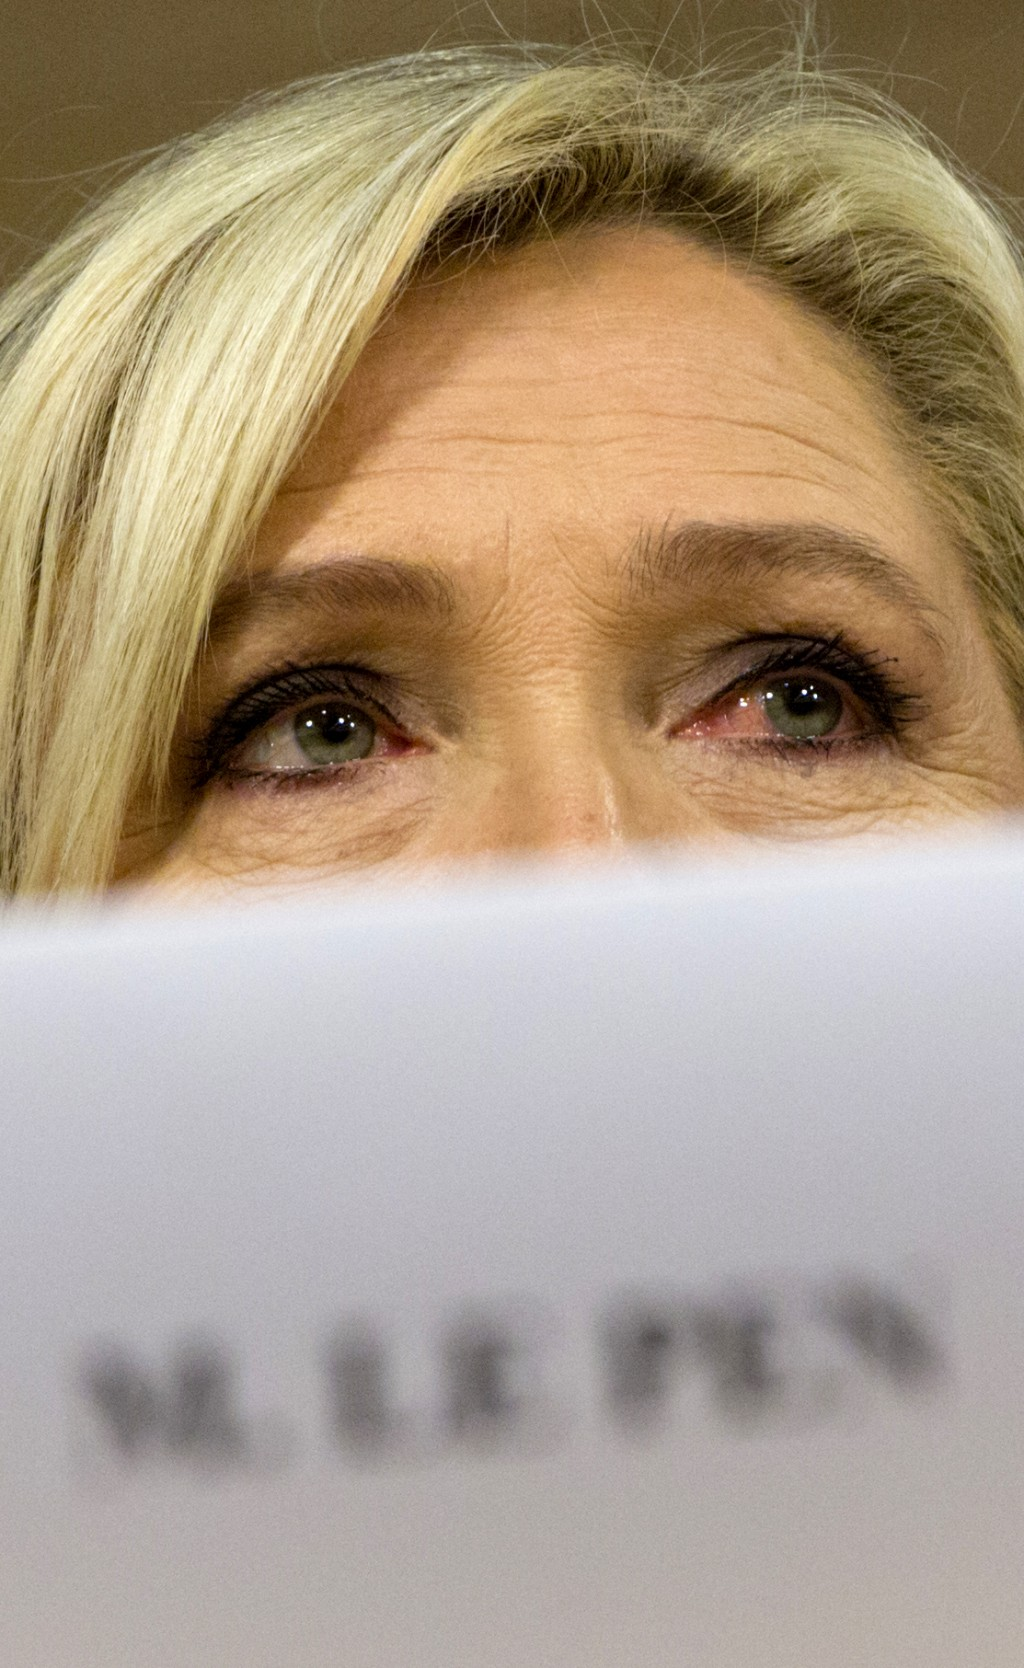 French far-right National Rally leader and MEP Marine Le Pen attends a media conference to announce the formation of a new far-right European Parliame...